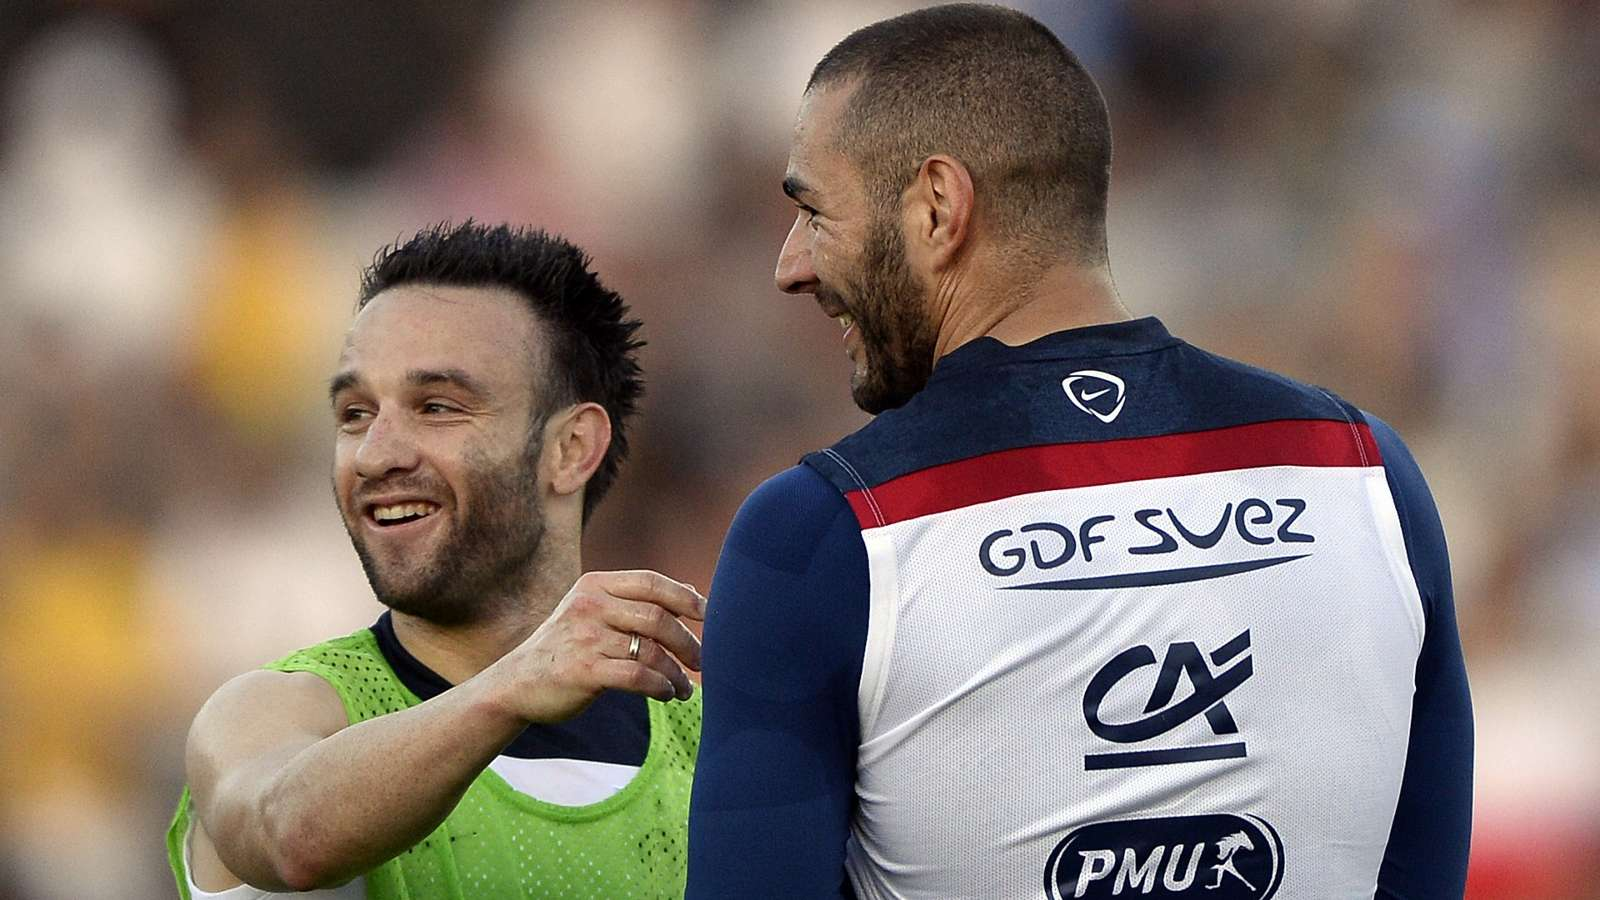 Valbuena awaits court ruling on Benzema conviction in extortion case